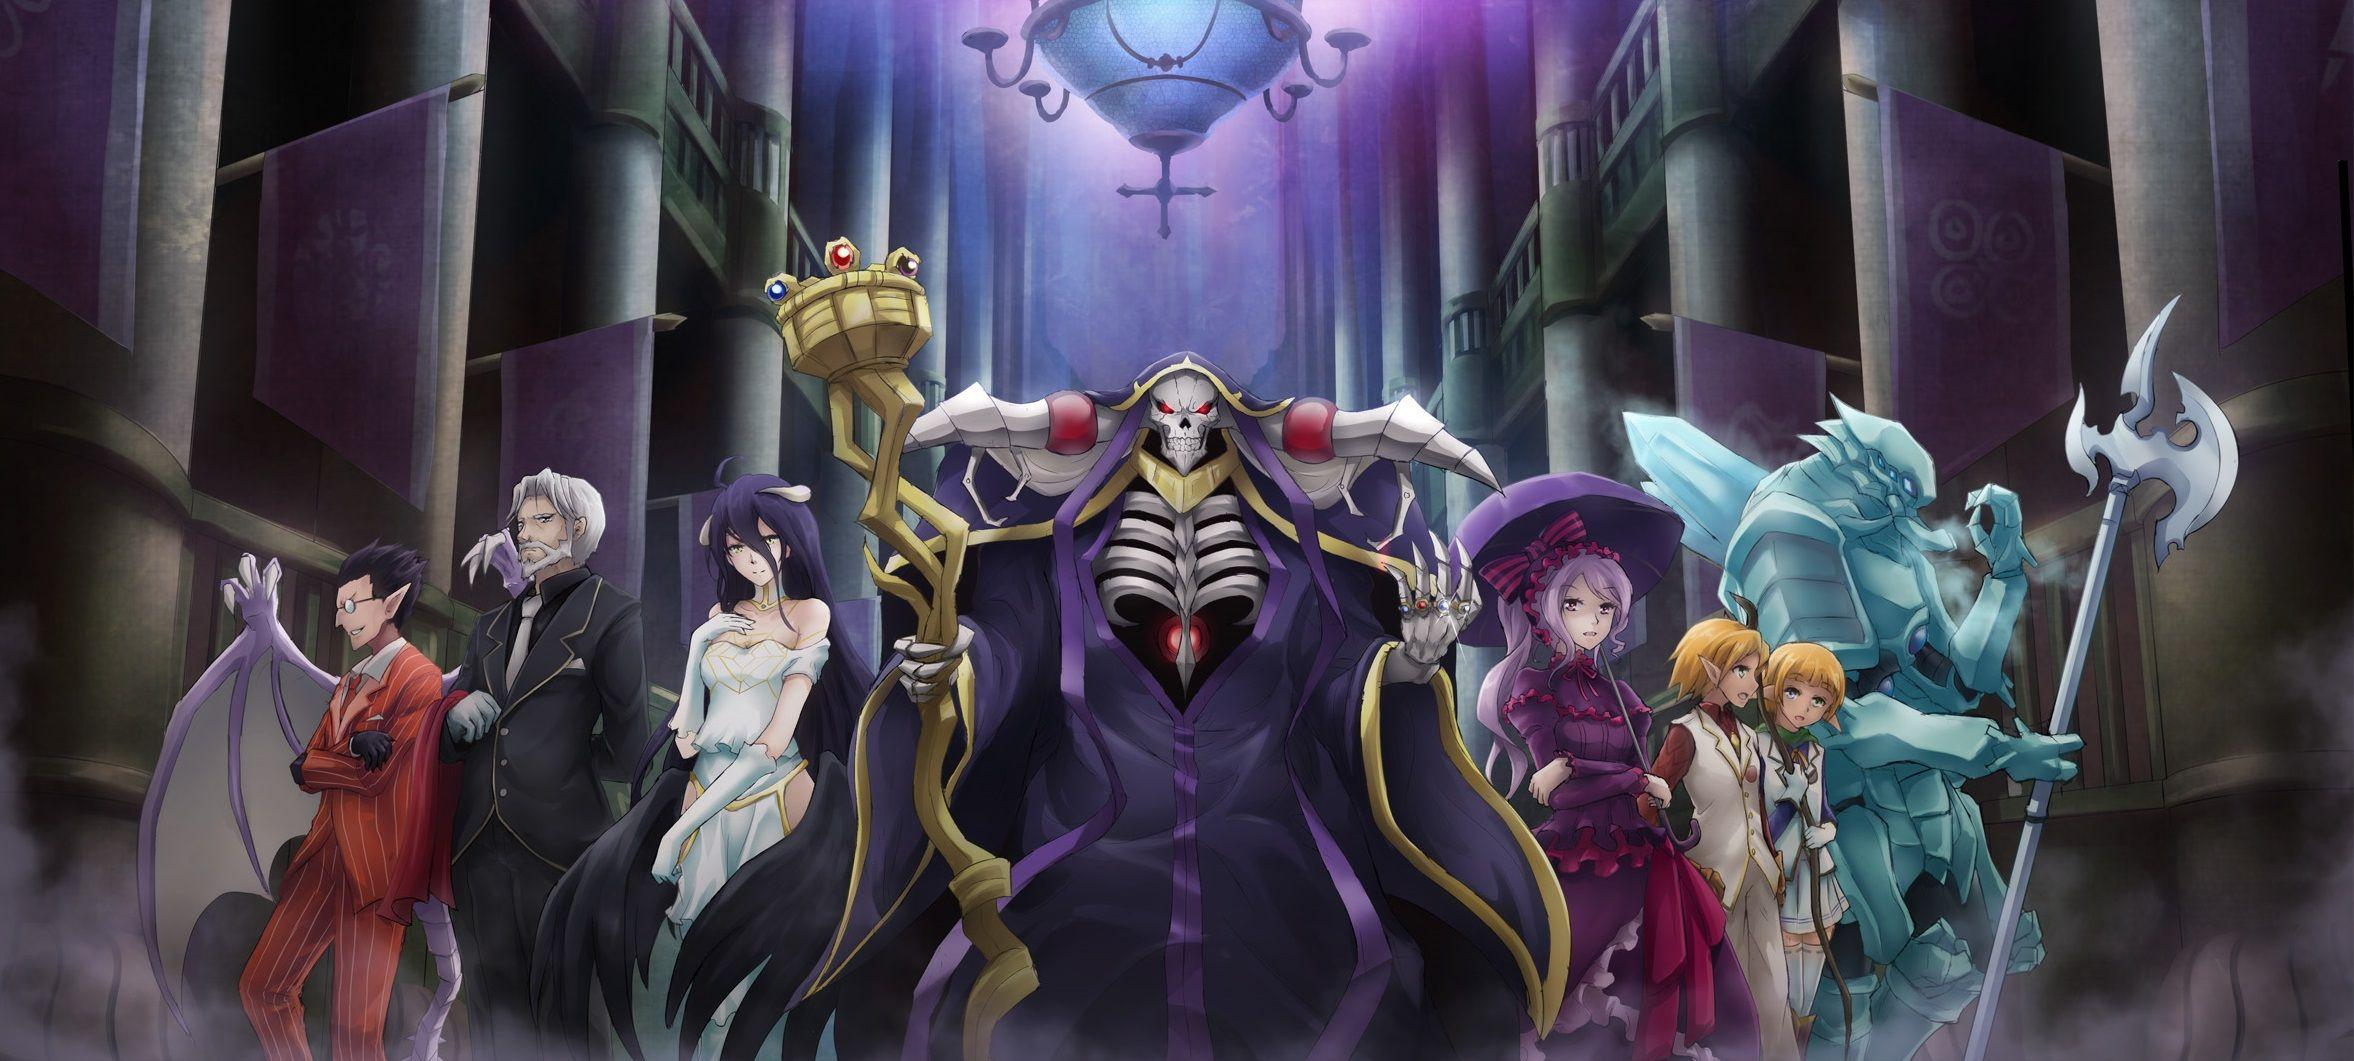 Overlord Wallpaper For Android Phone Download Free Images